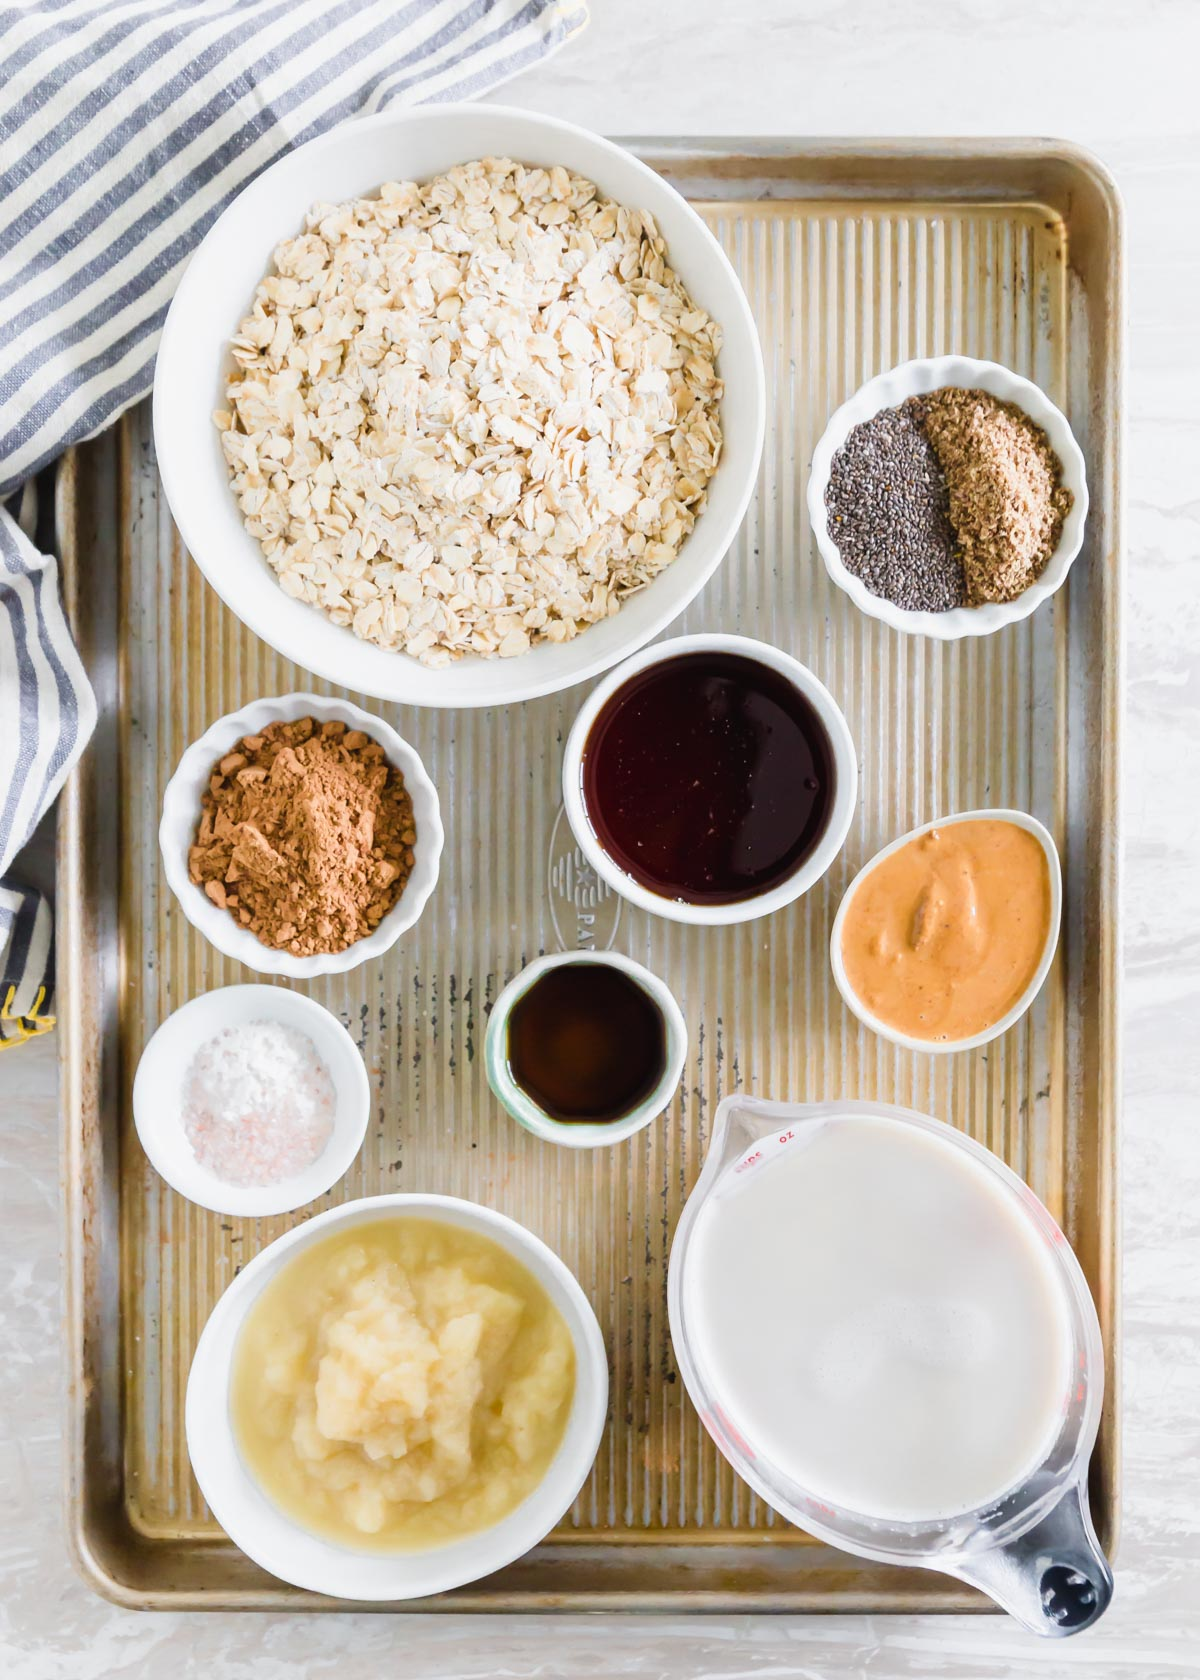 Ingredients to make baked chocolate oats including, rolled oats, chia and flax seeds, maple syrup, cacao powder, almond butter, vanilla, baking powder, salt, applesauce and milk of choice.